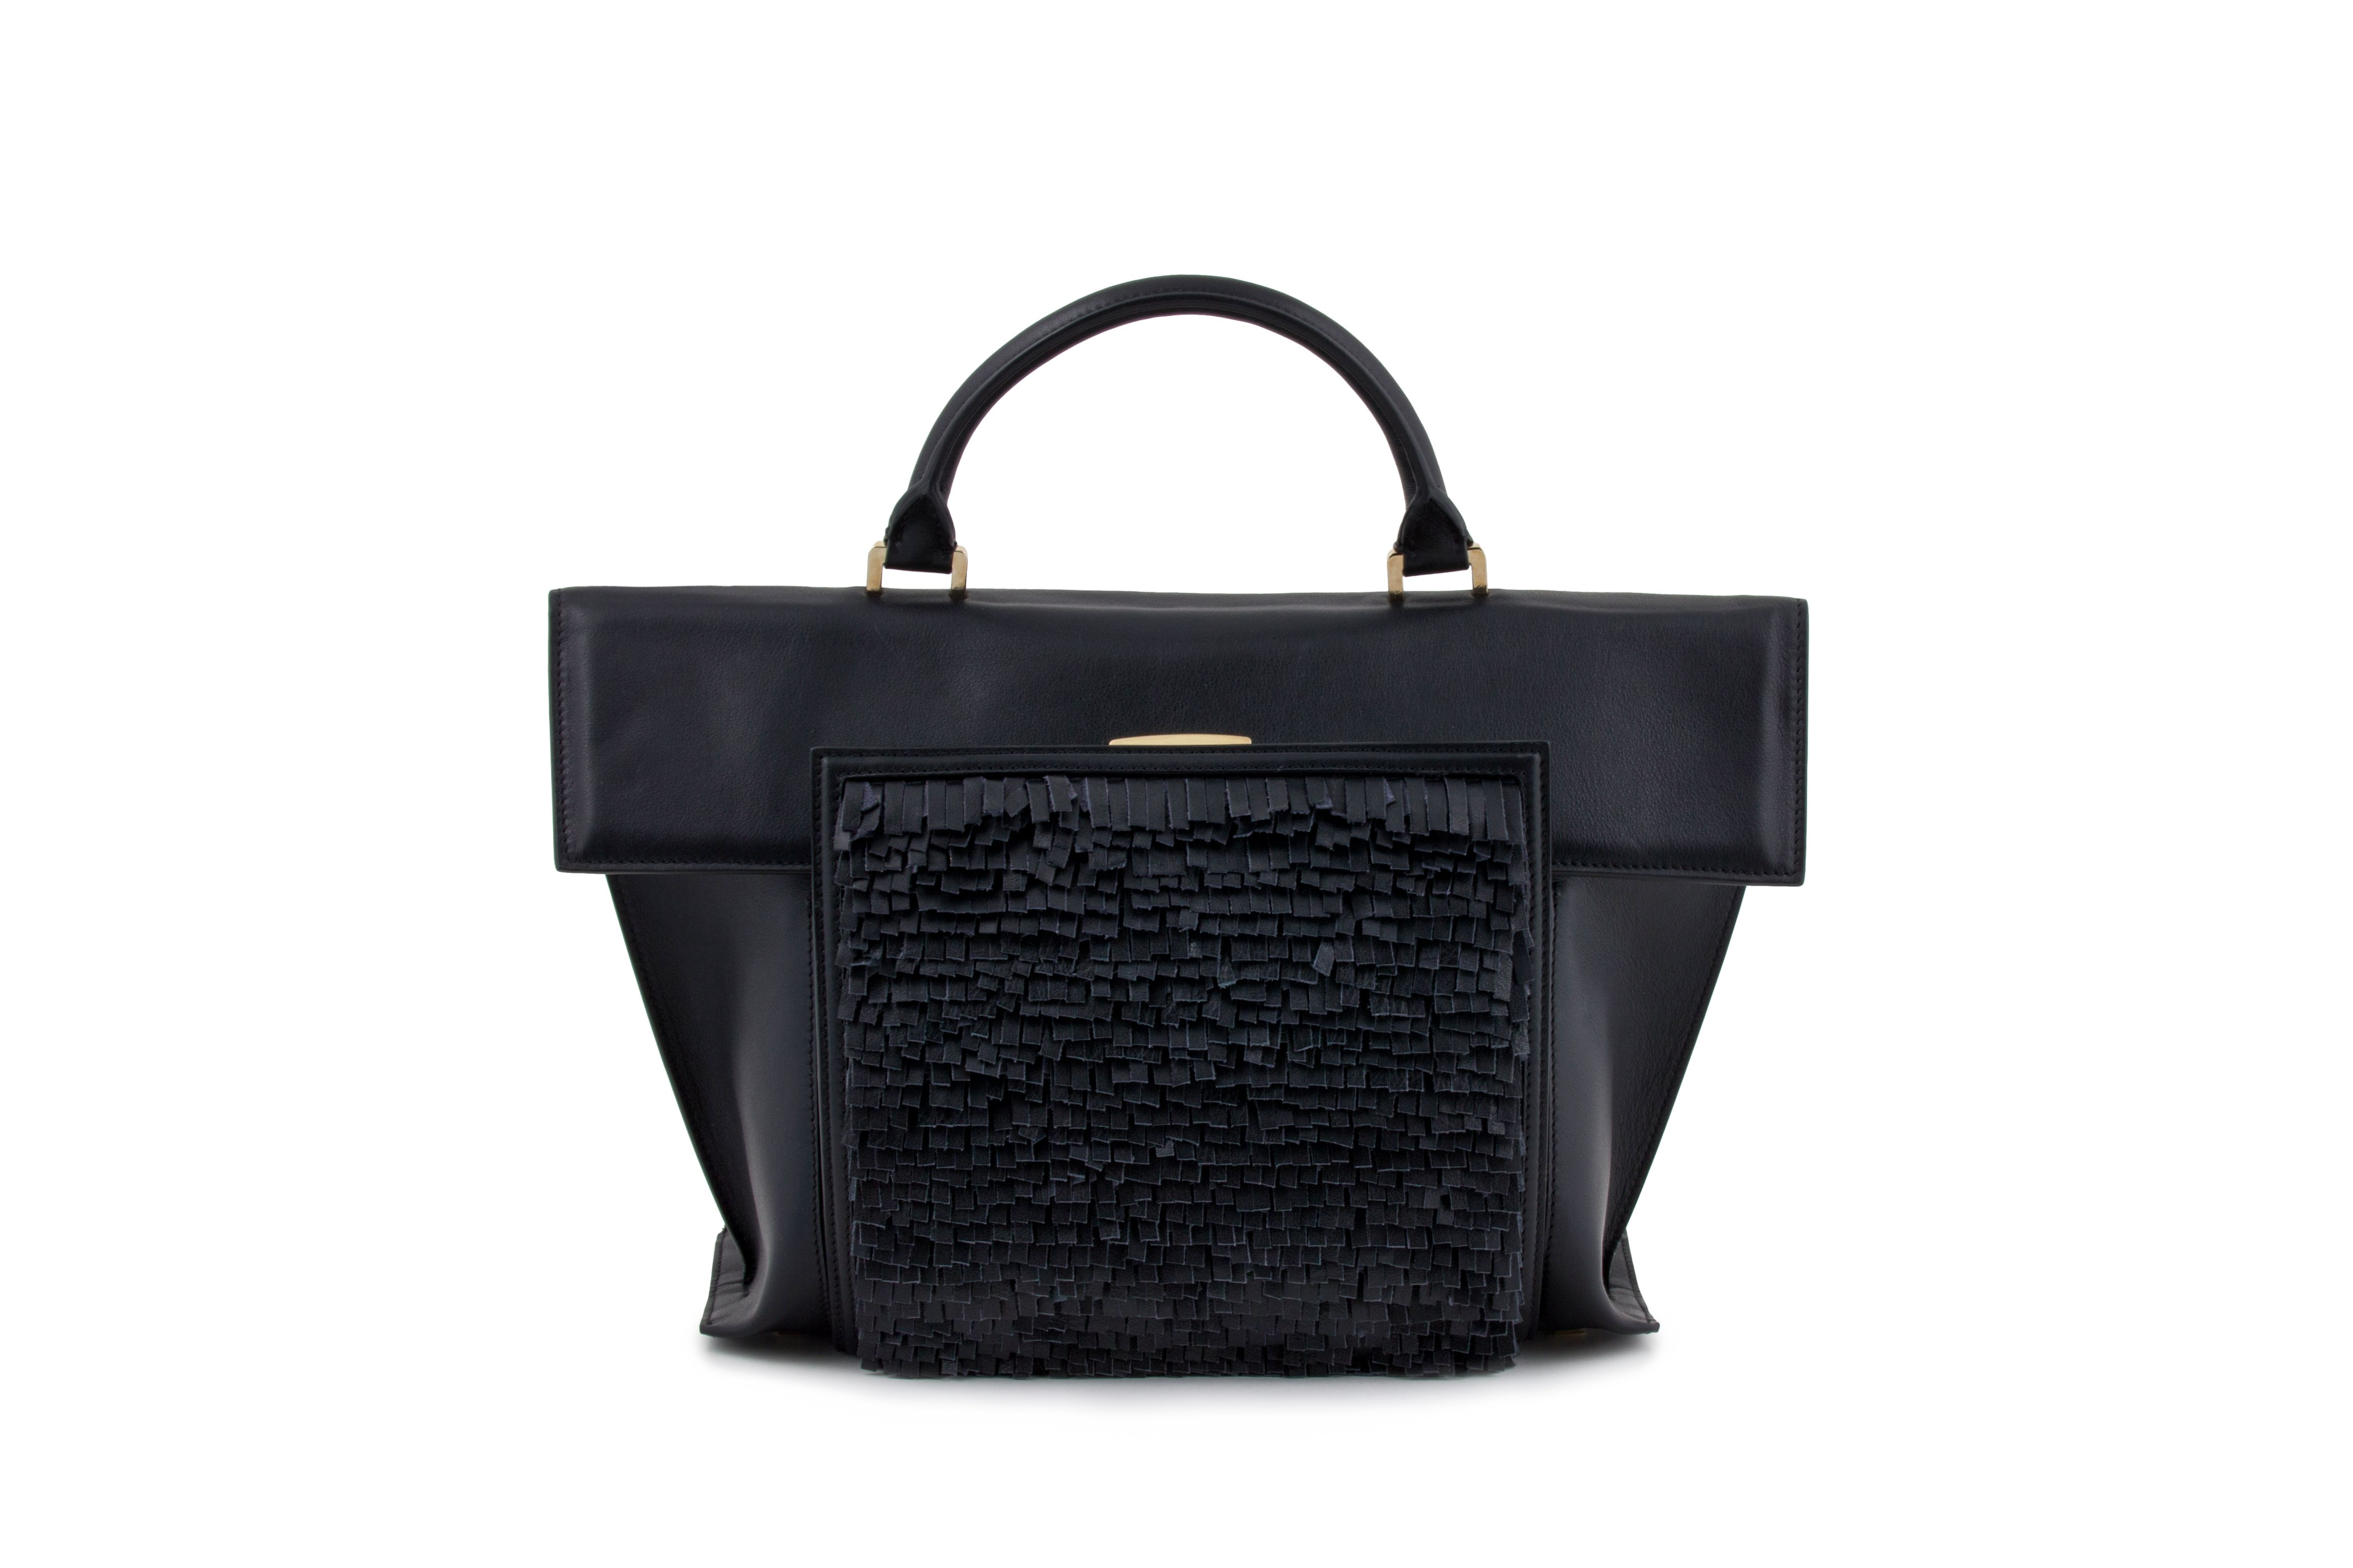 Azzurra Gronchi fall/winter bags collection, black bag